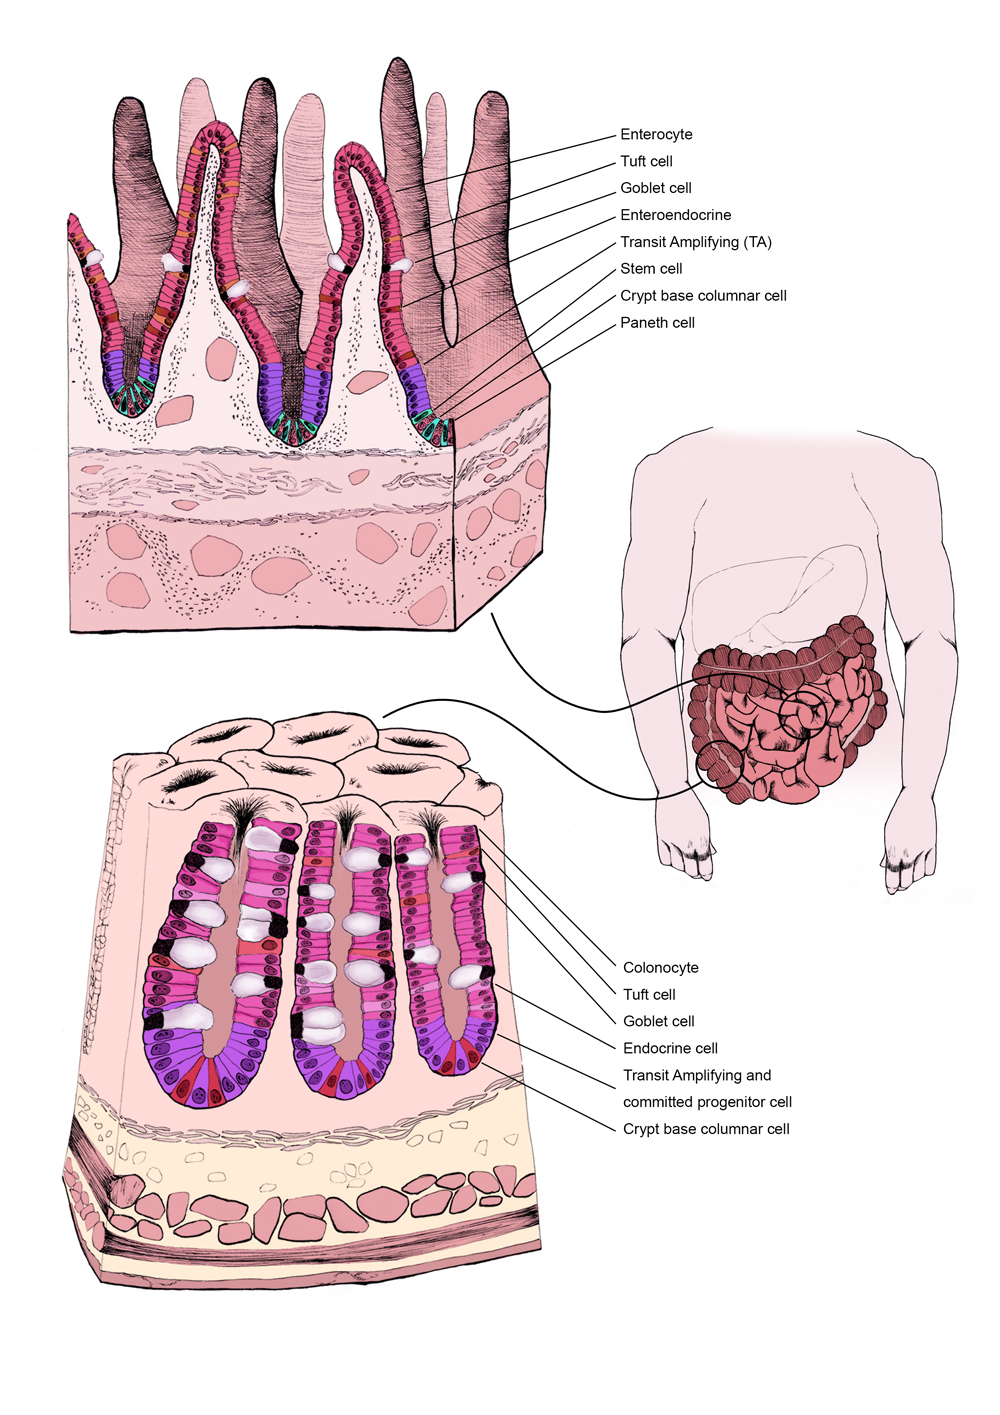 Figure 1: the structure and cellular composition of the small and large intestine.